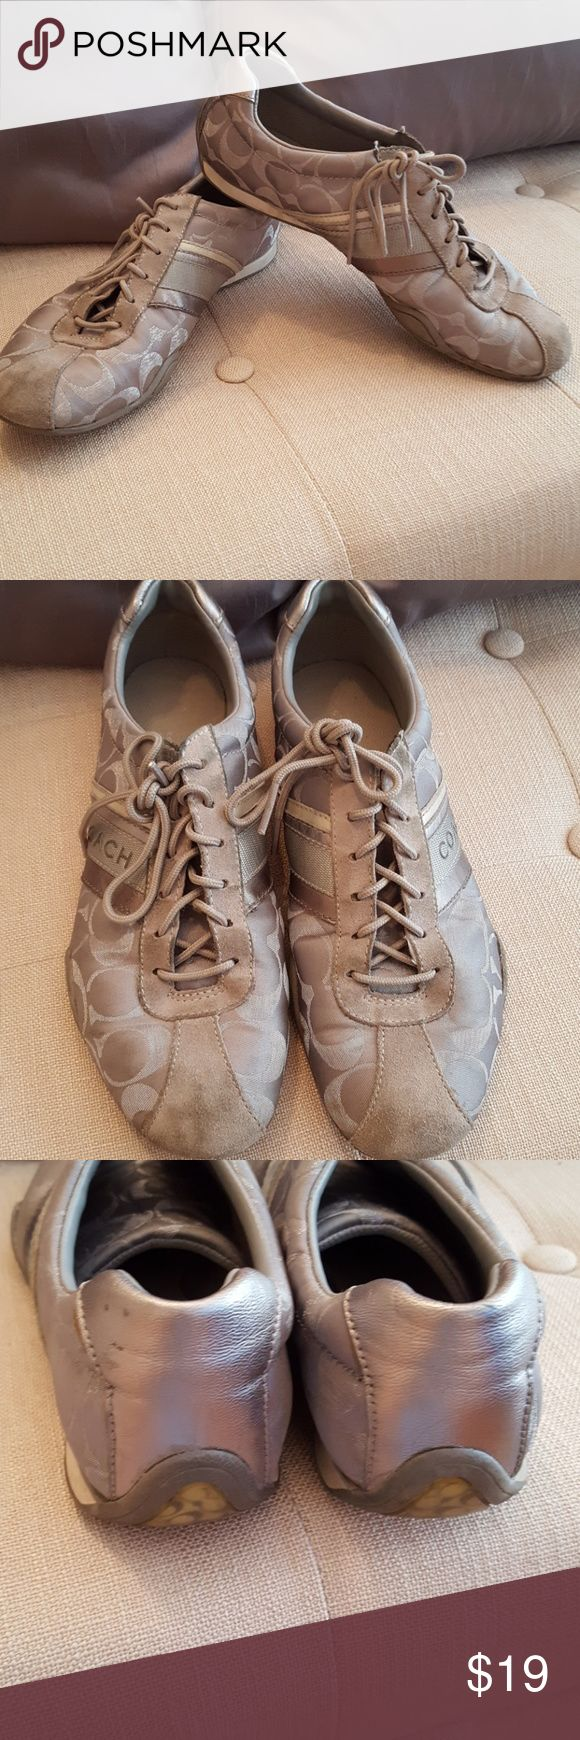 Coach tennis shoes Used condition, could probably be cleaned up with soap and water.  Open to offers! Coach Shoes Sneakers